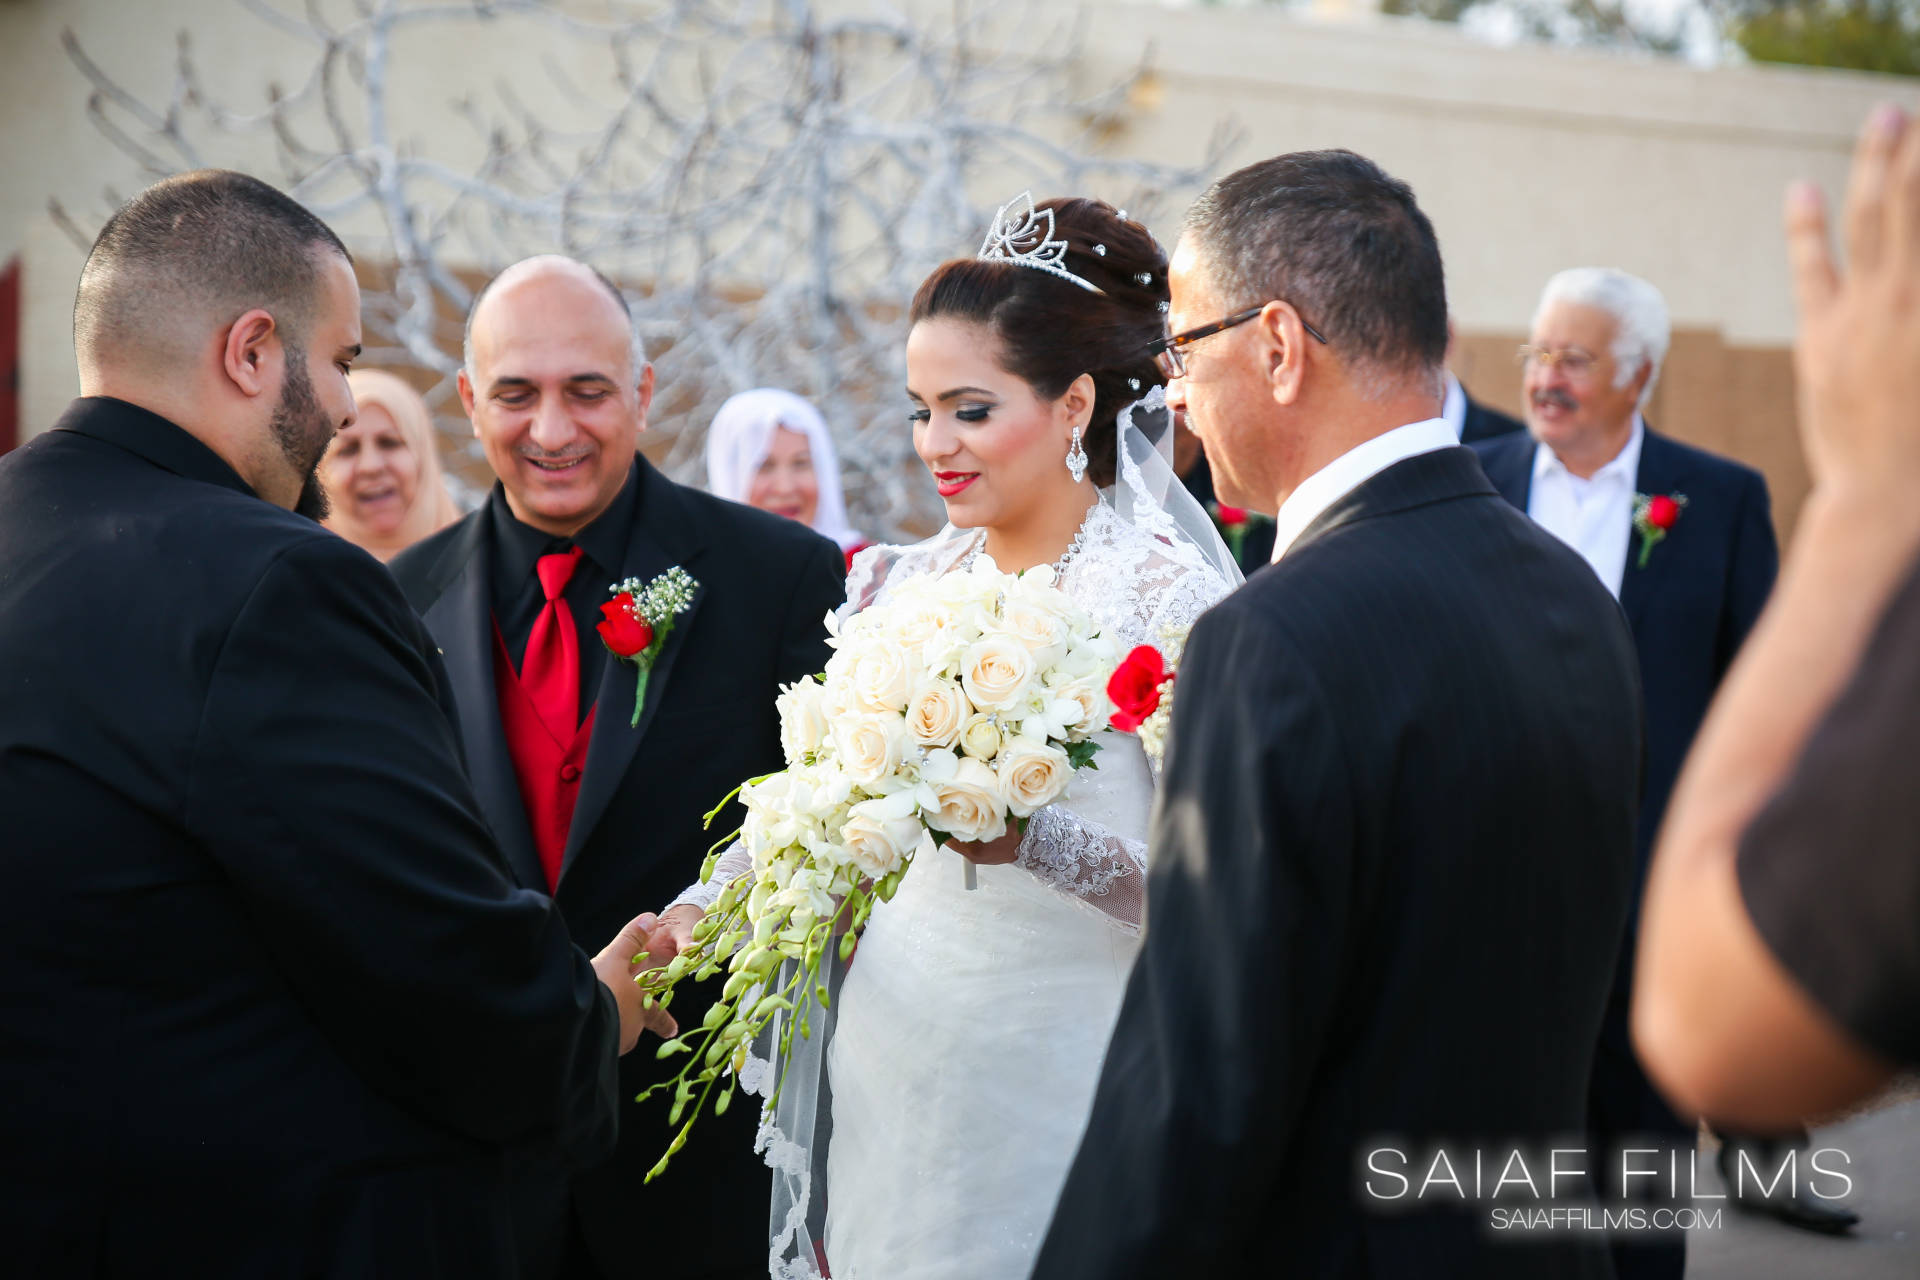 Palestinian wedding